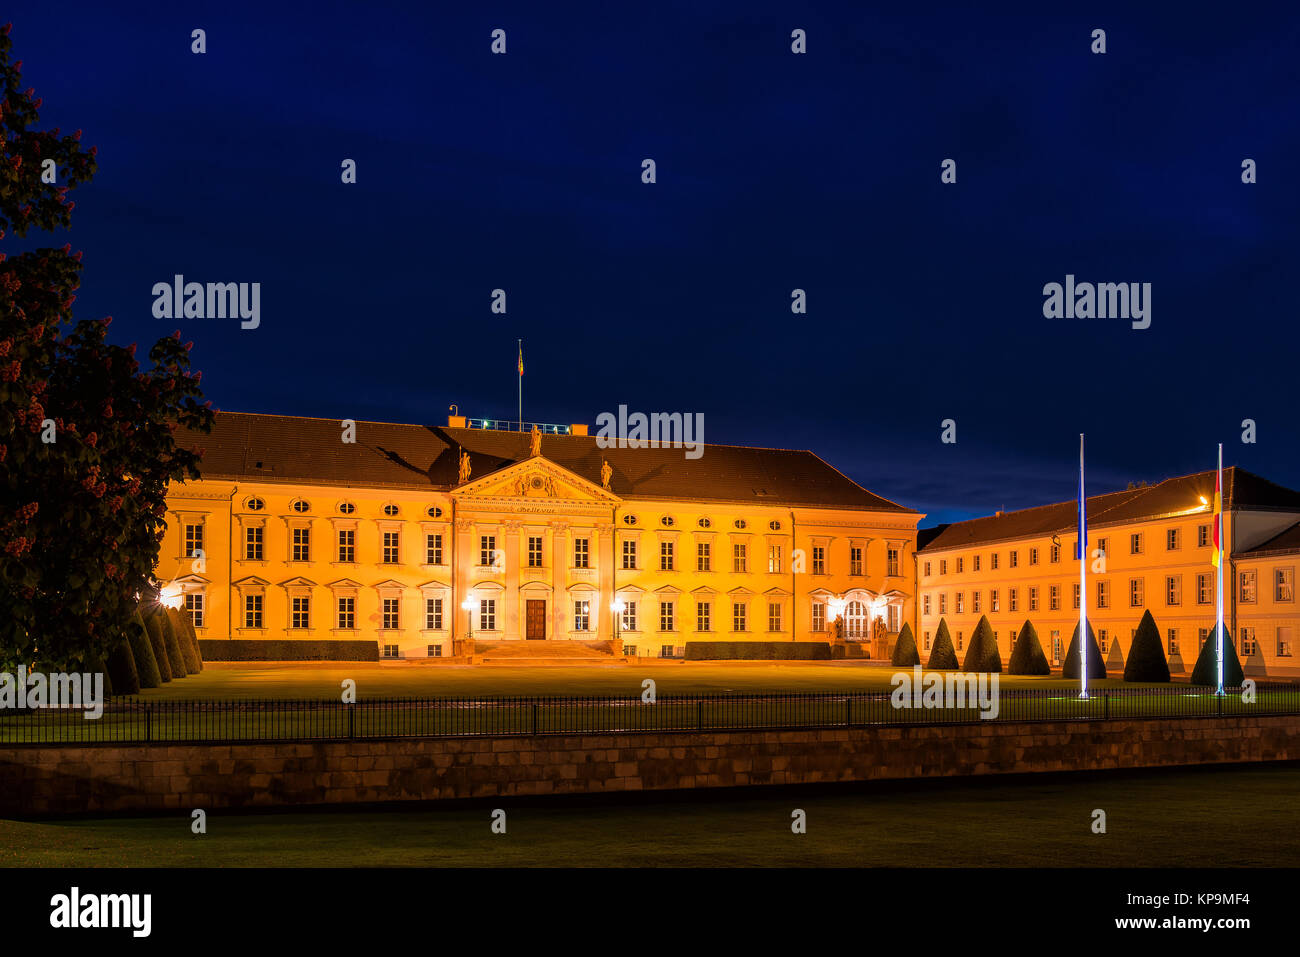 bellevue palace - Stock Image